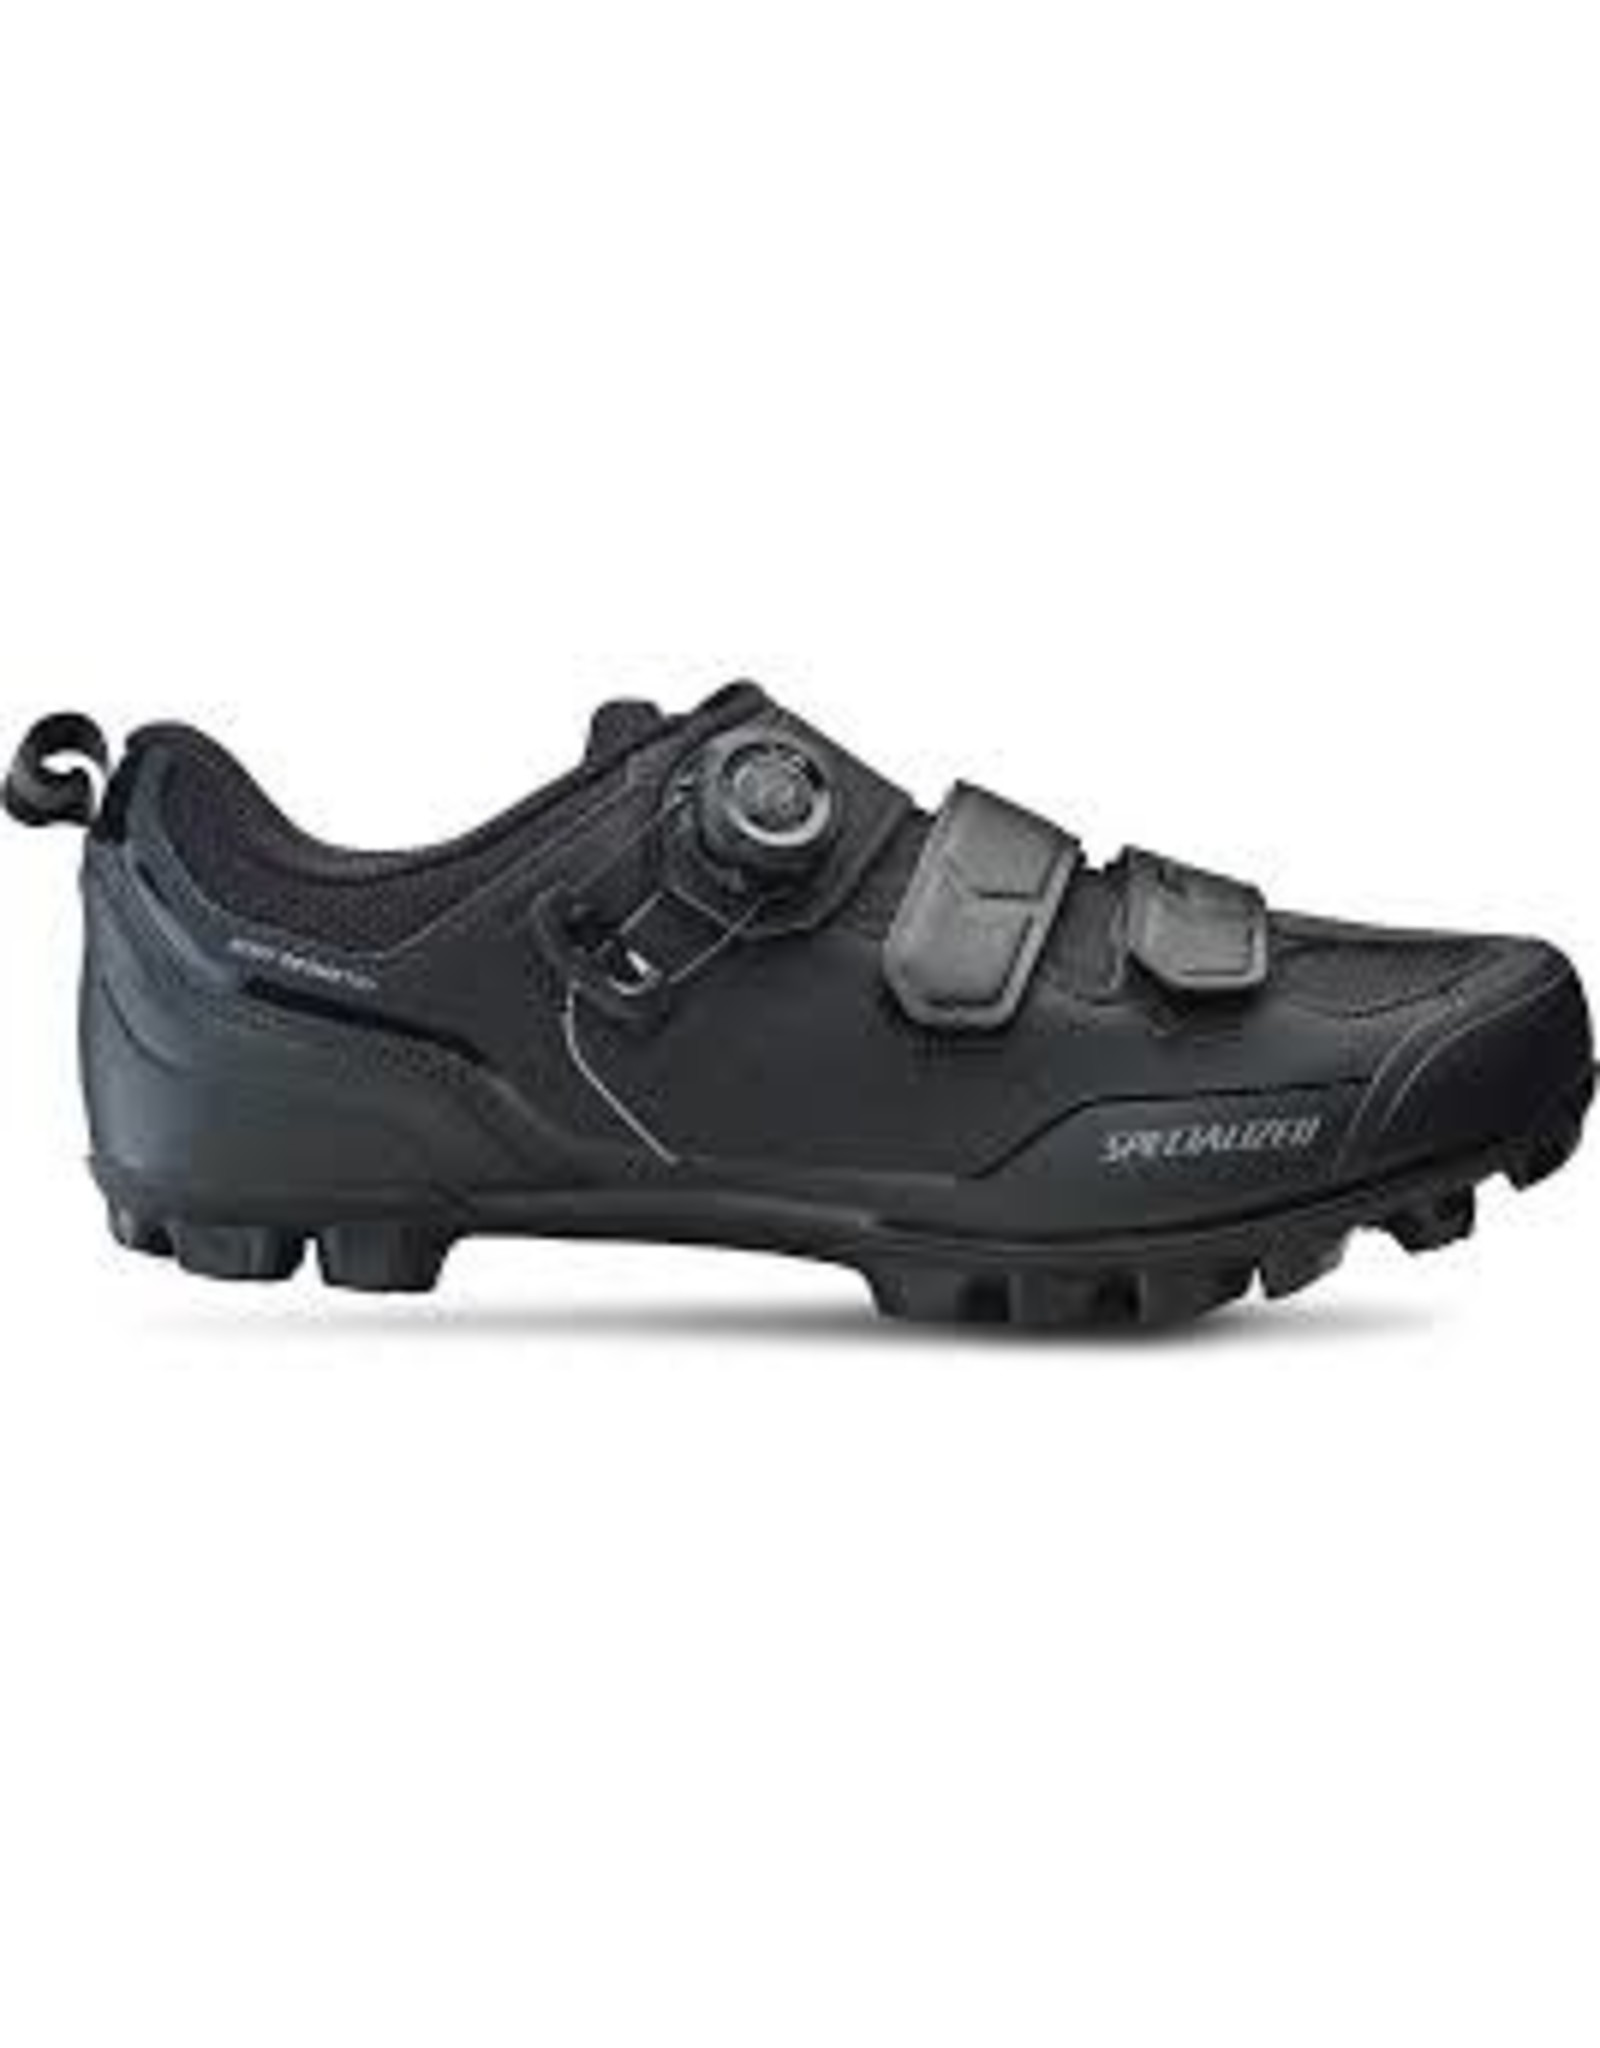 Specialized COMP MTB SHOE BLK/DKGRY 39.5